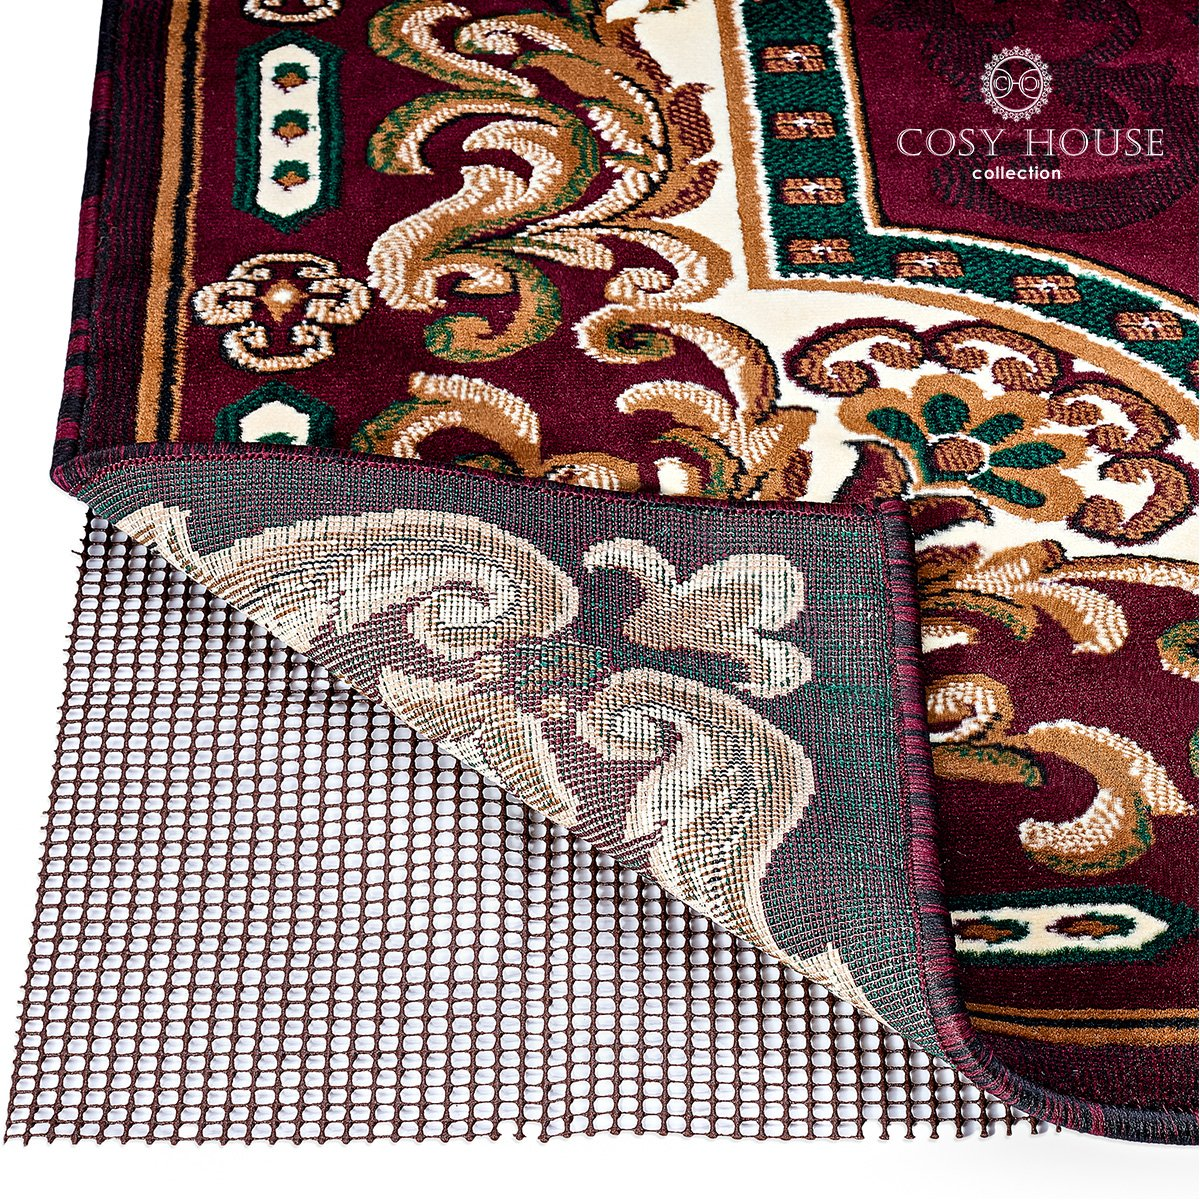 Non Slip Area Rug Pad - Fully Washable, Thick Rug Gripper for Firm Hold on Oriental, Traditional or Contemporary Rugs & Door Mats for any Hard Surface Floors - Wood, Tile or Cement (5' x 7')